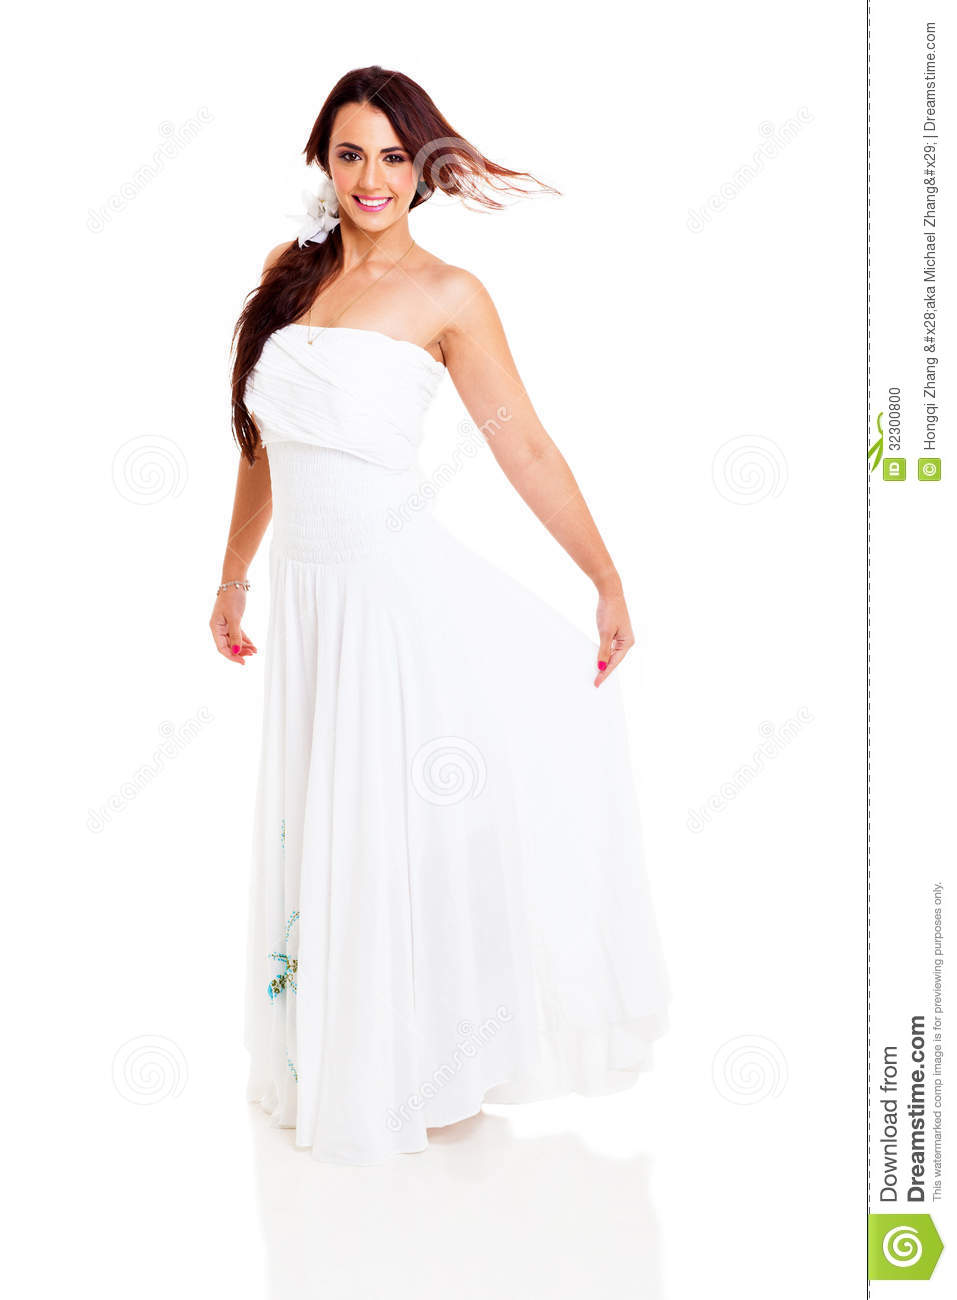 Wonderful Dresses For Women White Background Images  All White Background